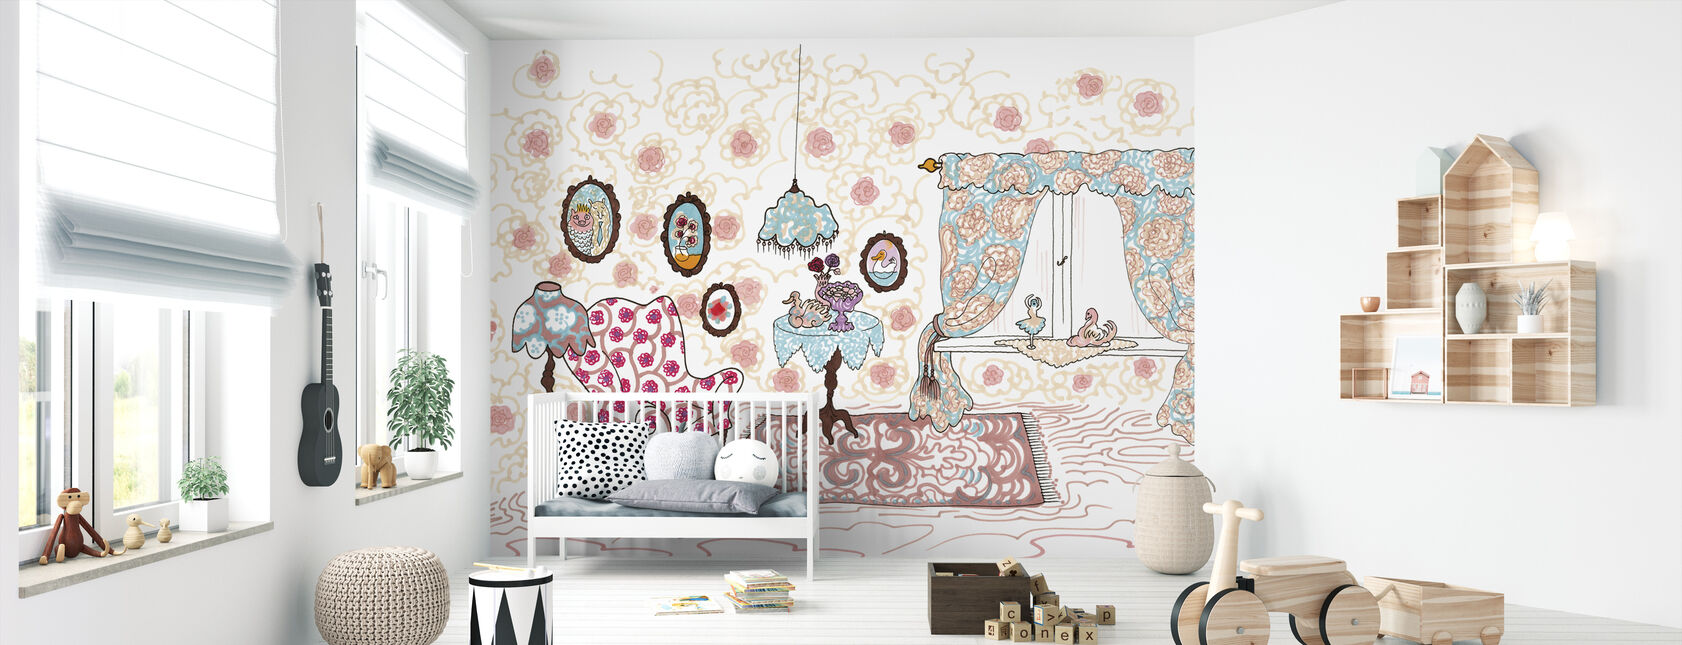 Nallegris hus - Wallpaper - Nursery